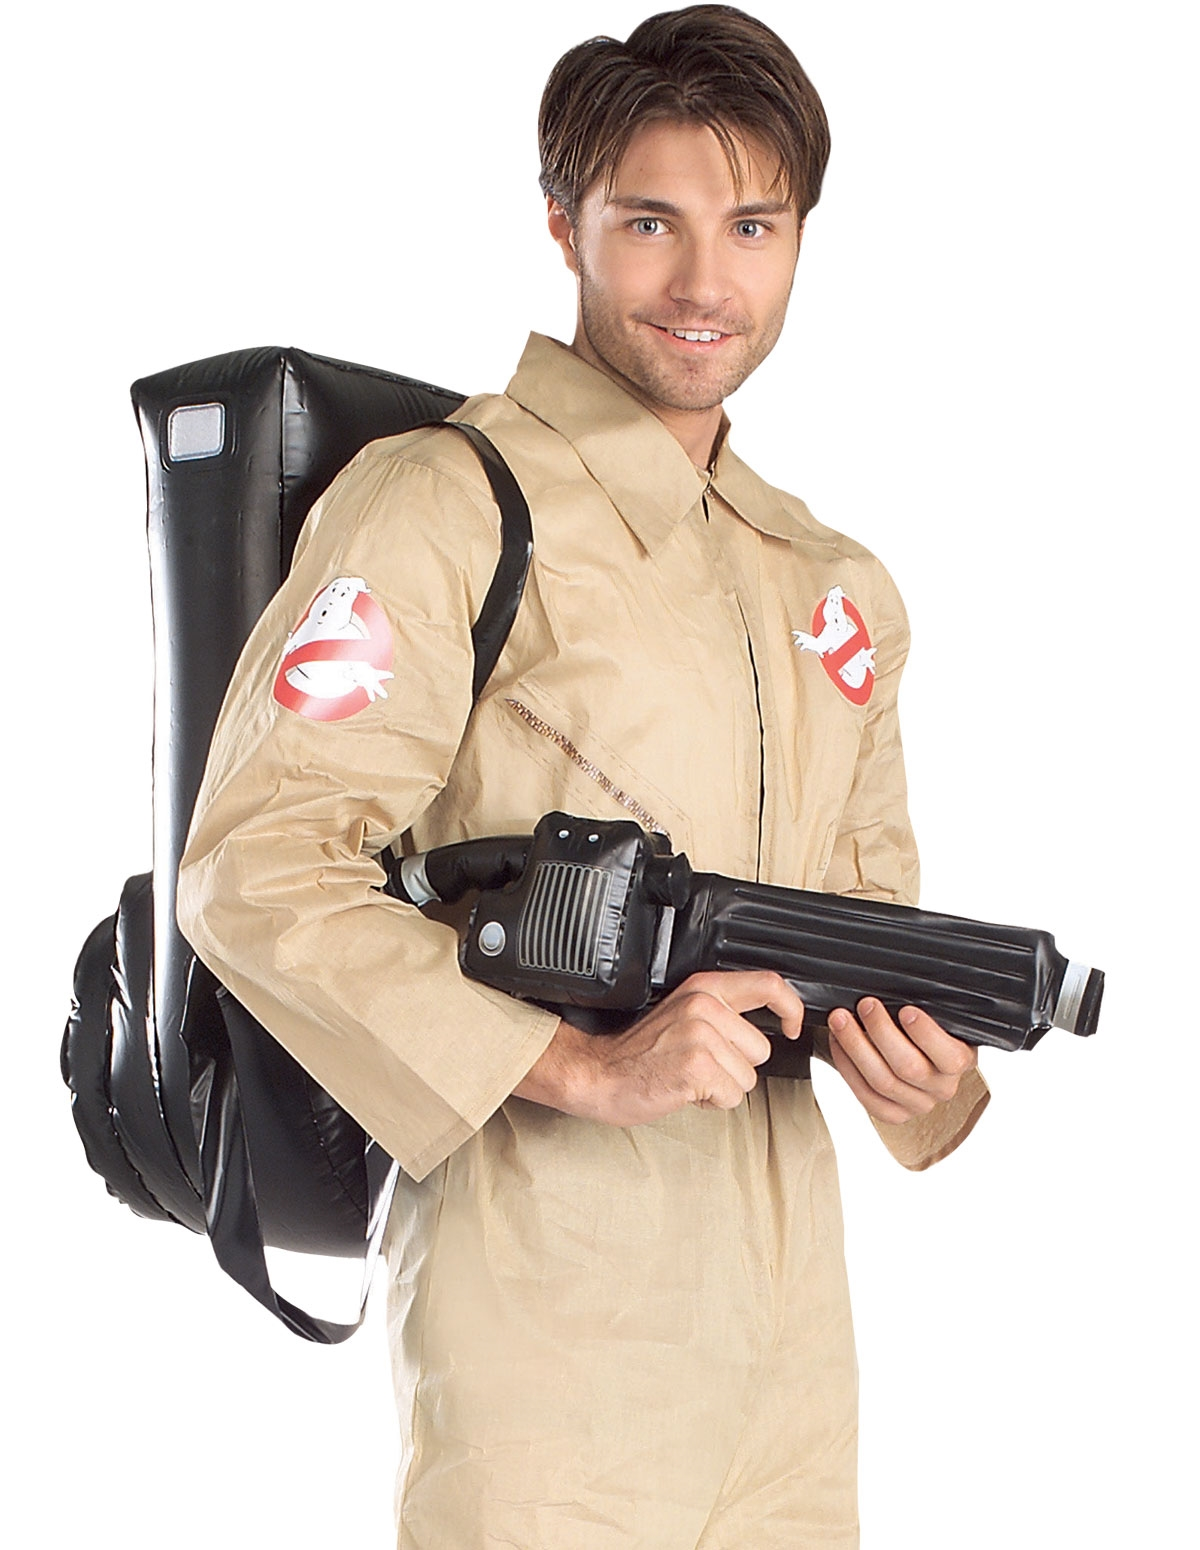 Ghostbusters Costume Regular Size